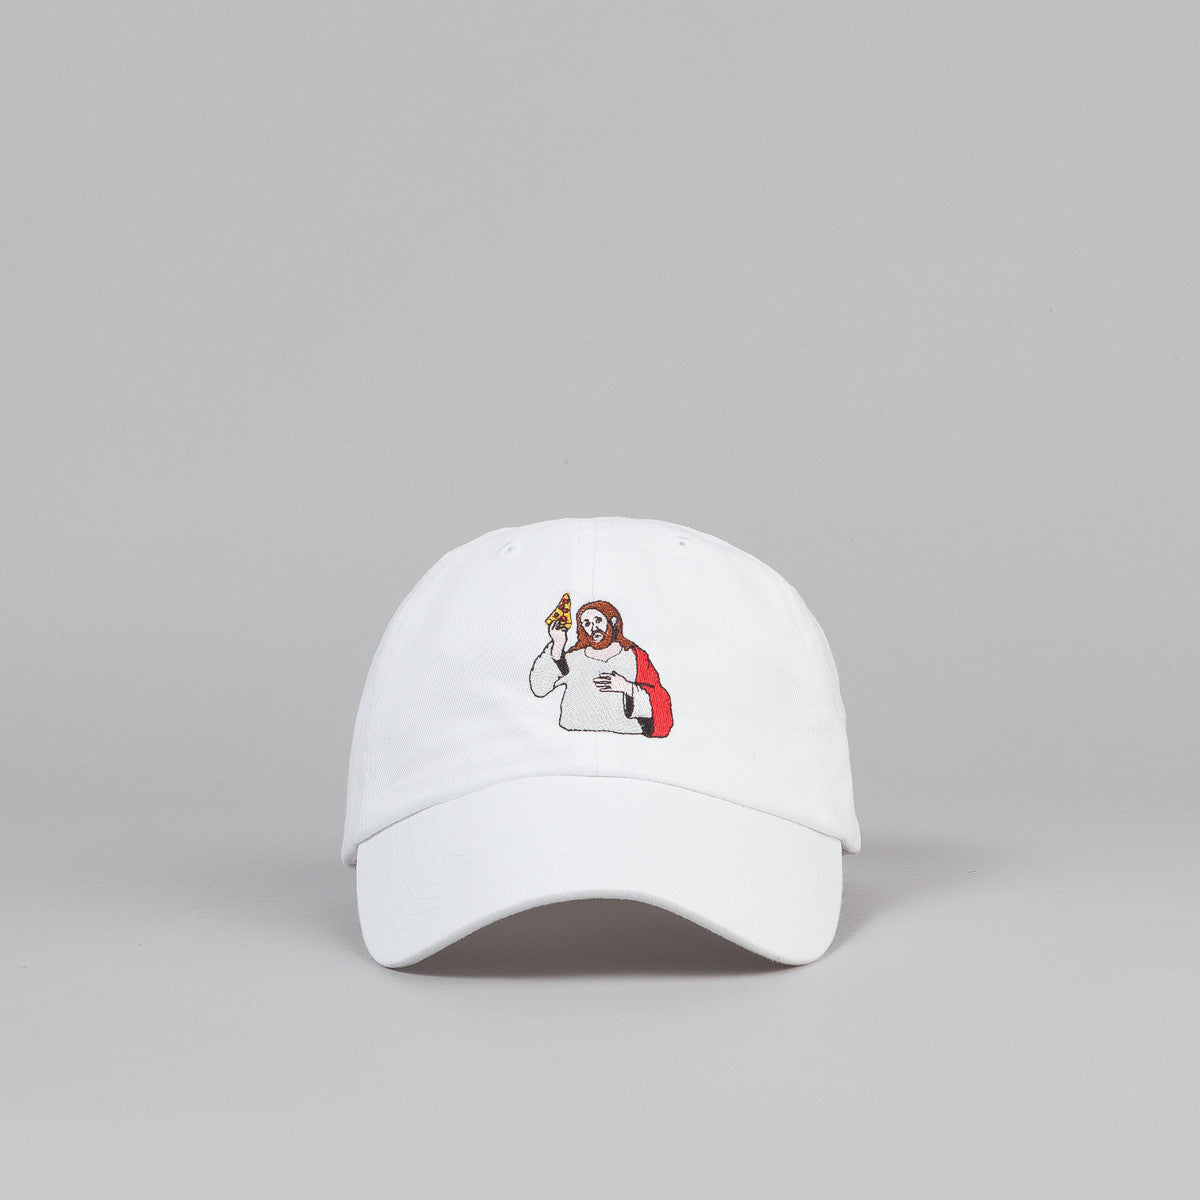 Pizza Skateboards Last Supper Delivery Boy Cap - White